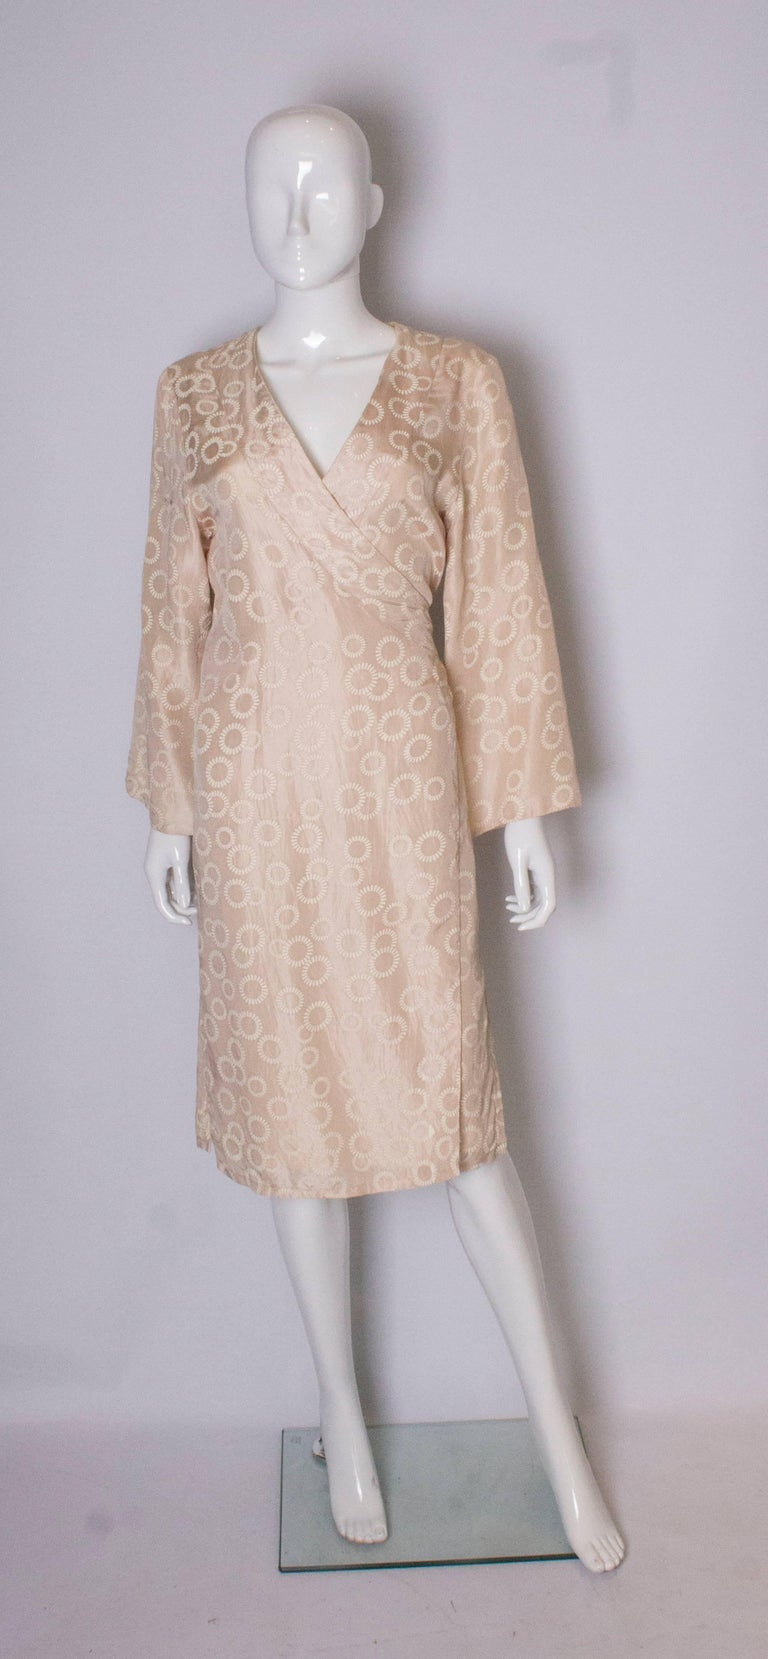 A silk wrapover, kimono style dress. The outer silk is a pale biscuit colour with a floral design, the lining is silk. The ties tie at the back. Bust up to 38/39'', length 45''.